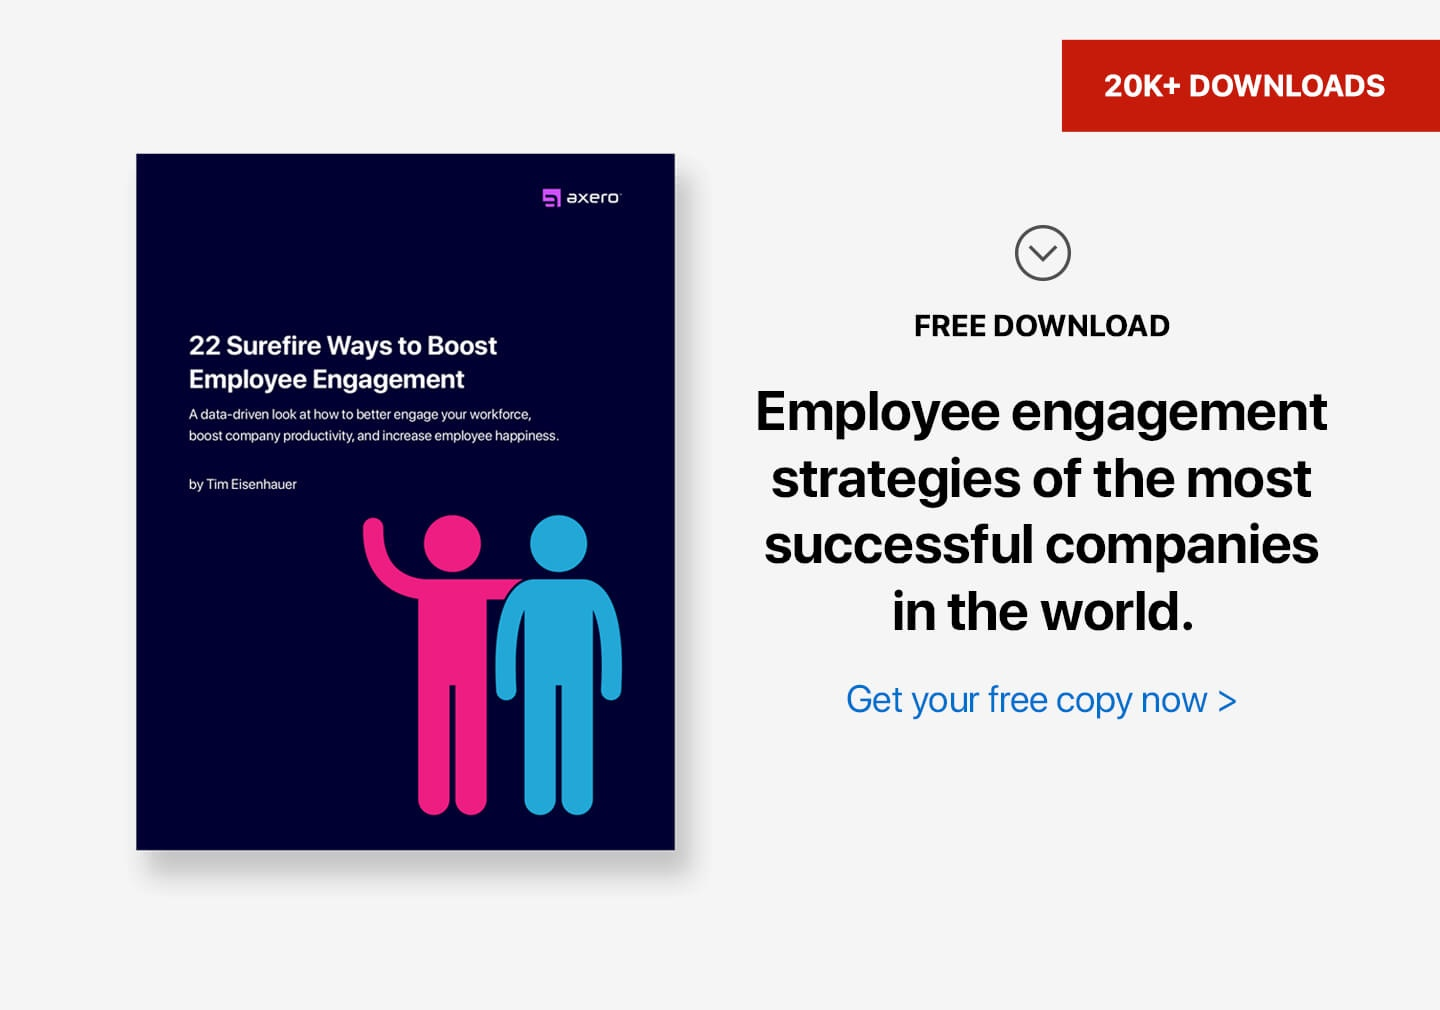 22 Surefire Ways to Increase Employee Engagement